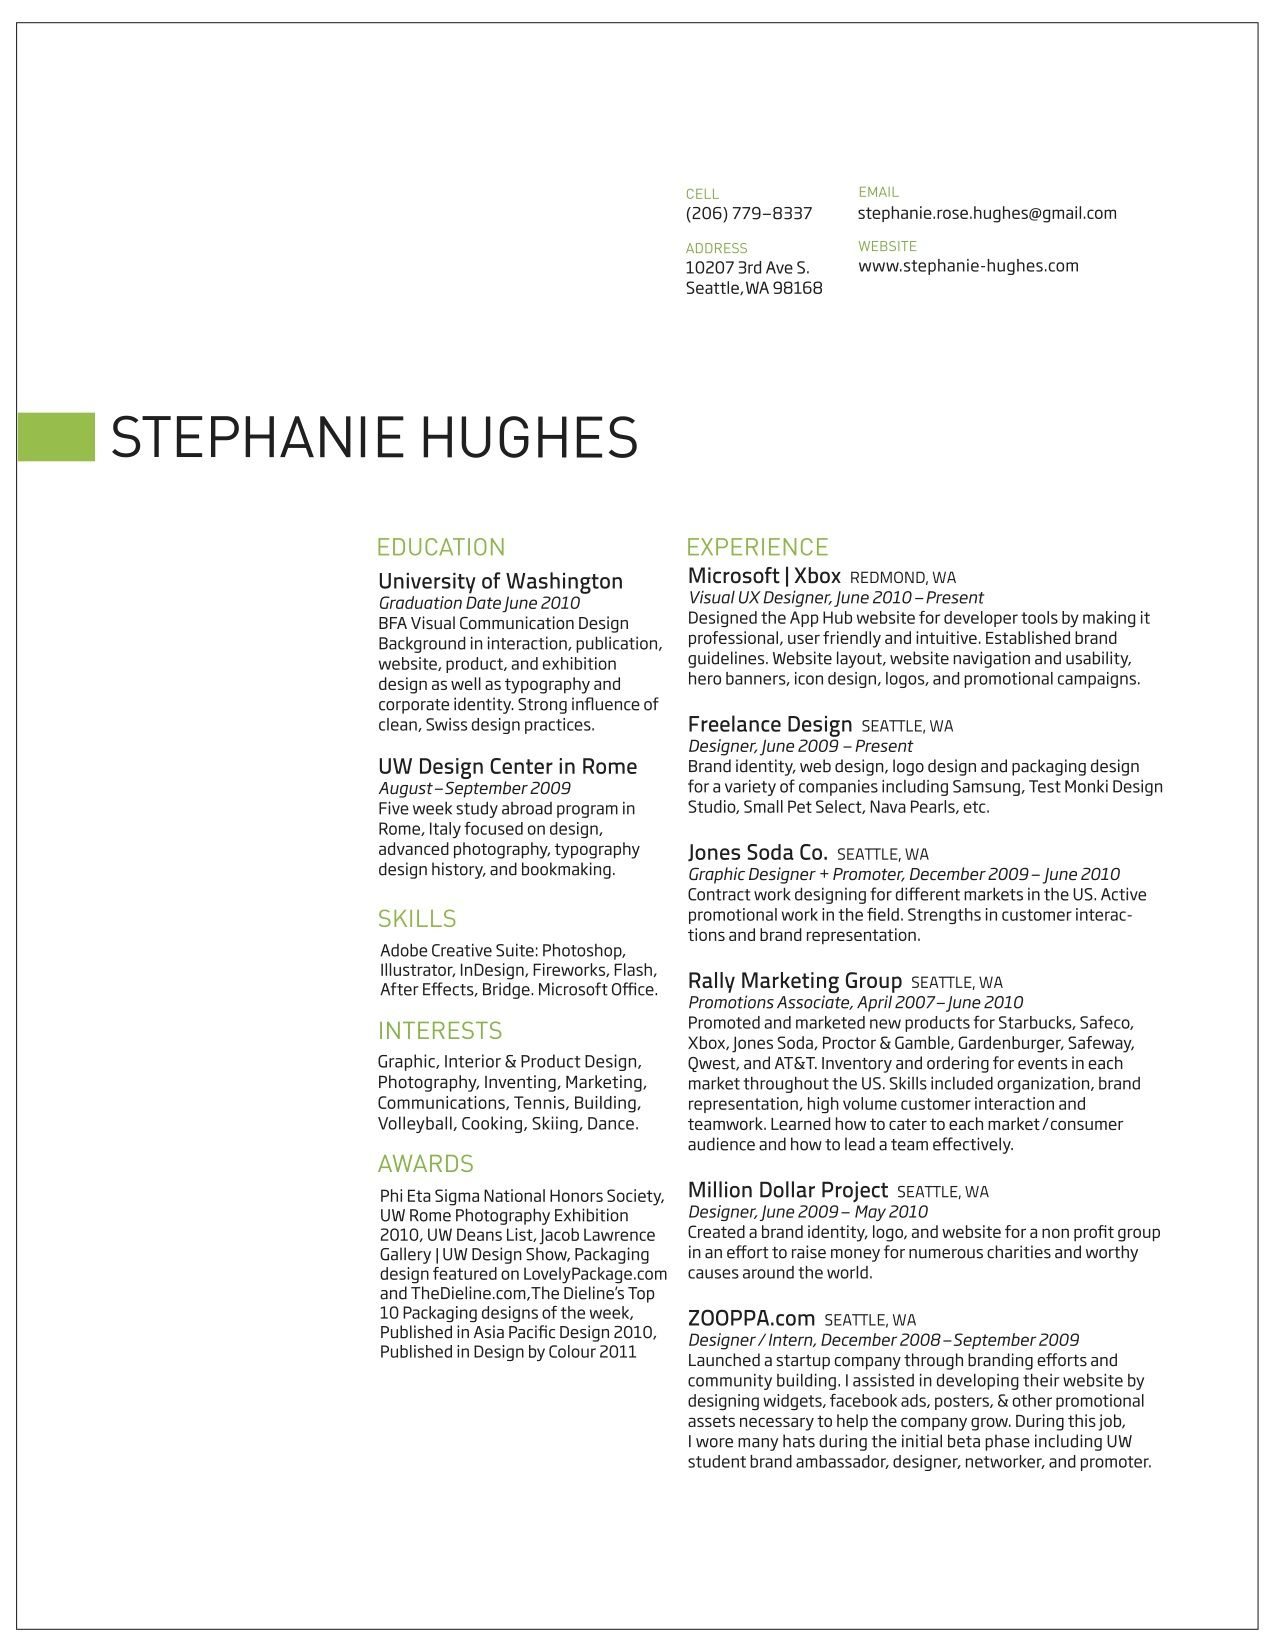 love this resume  white space really works even though